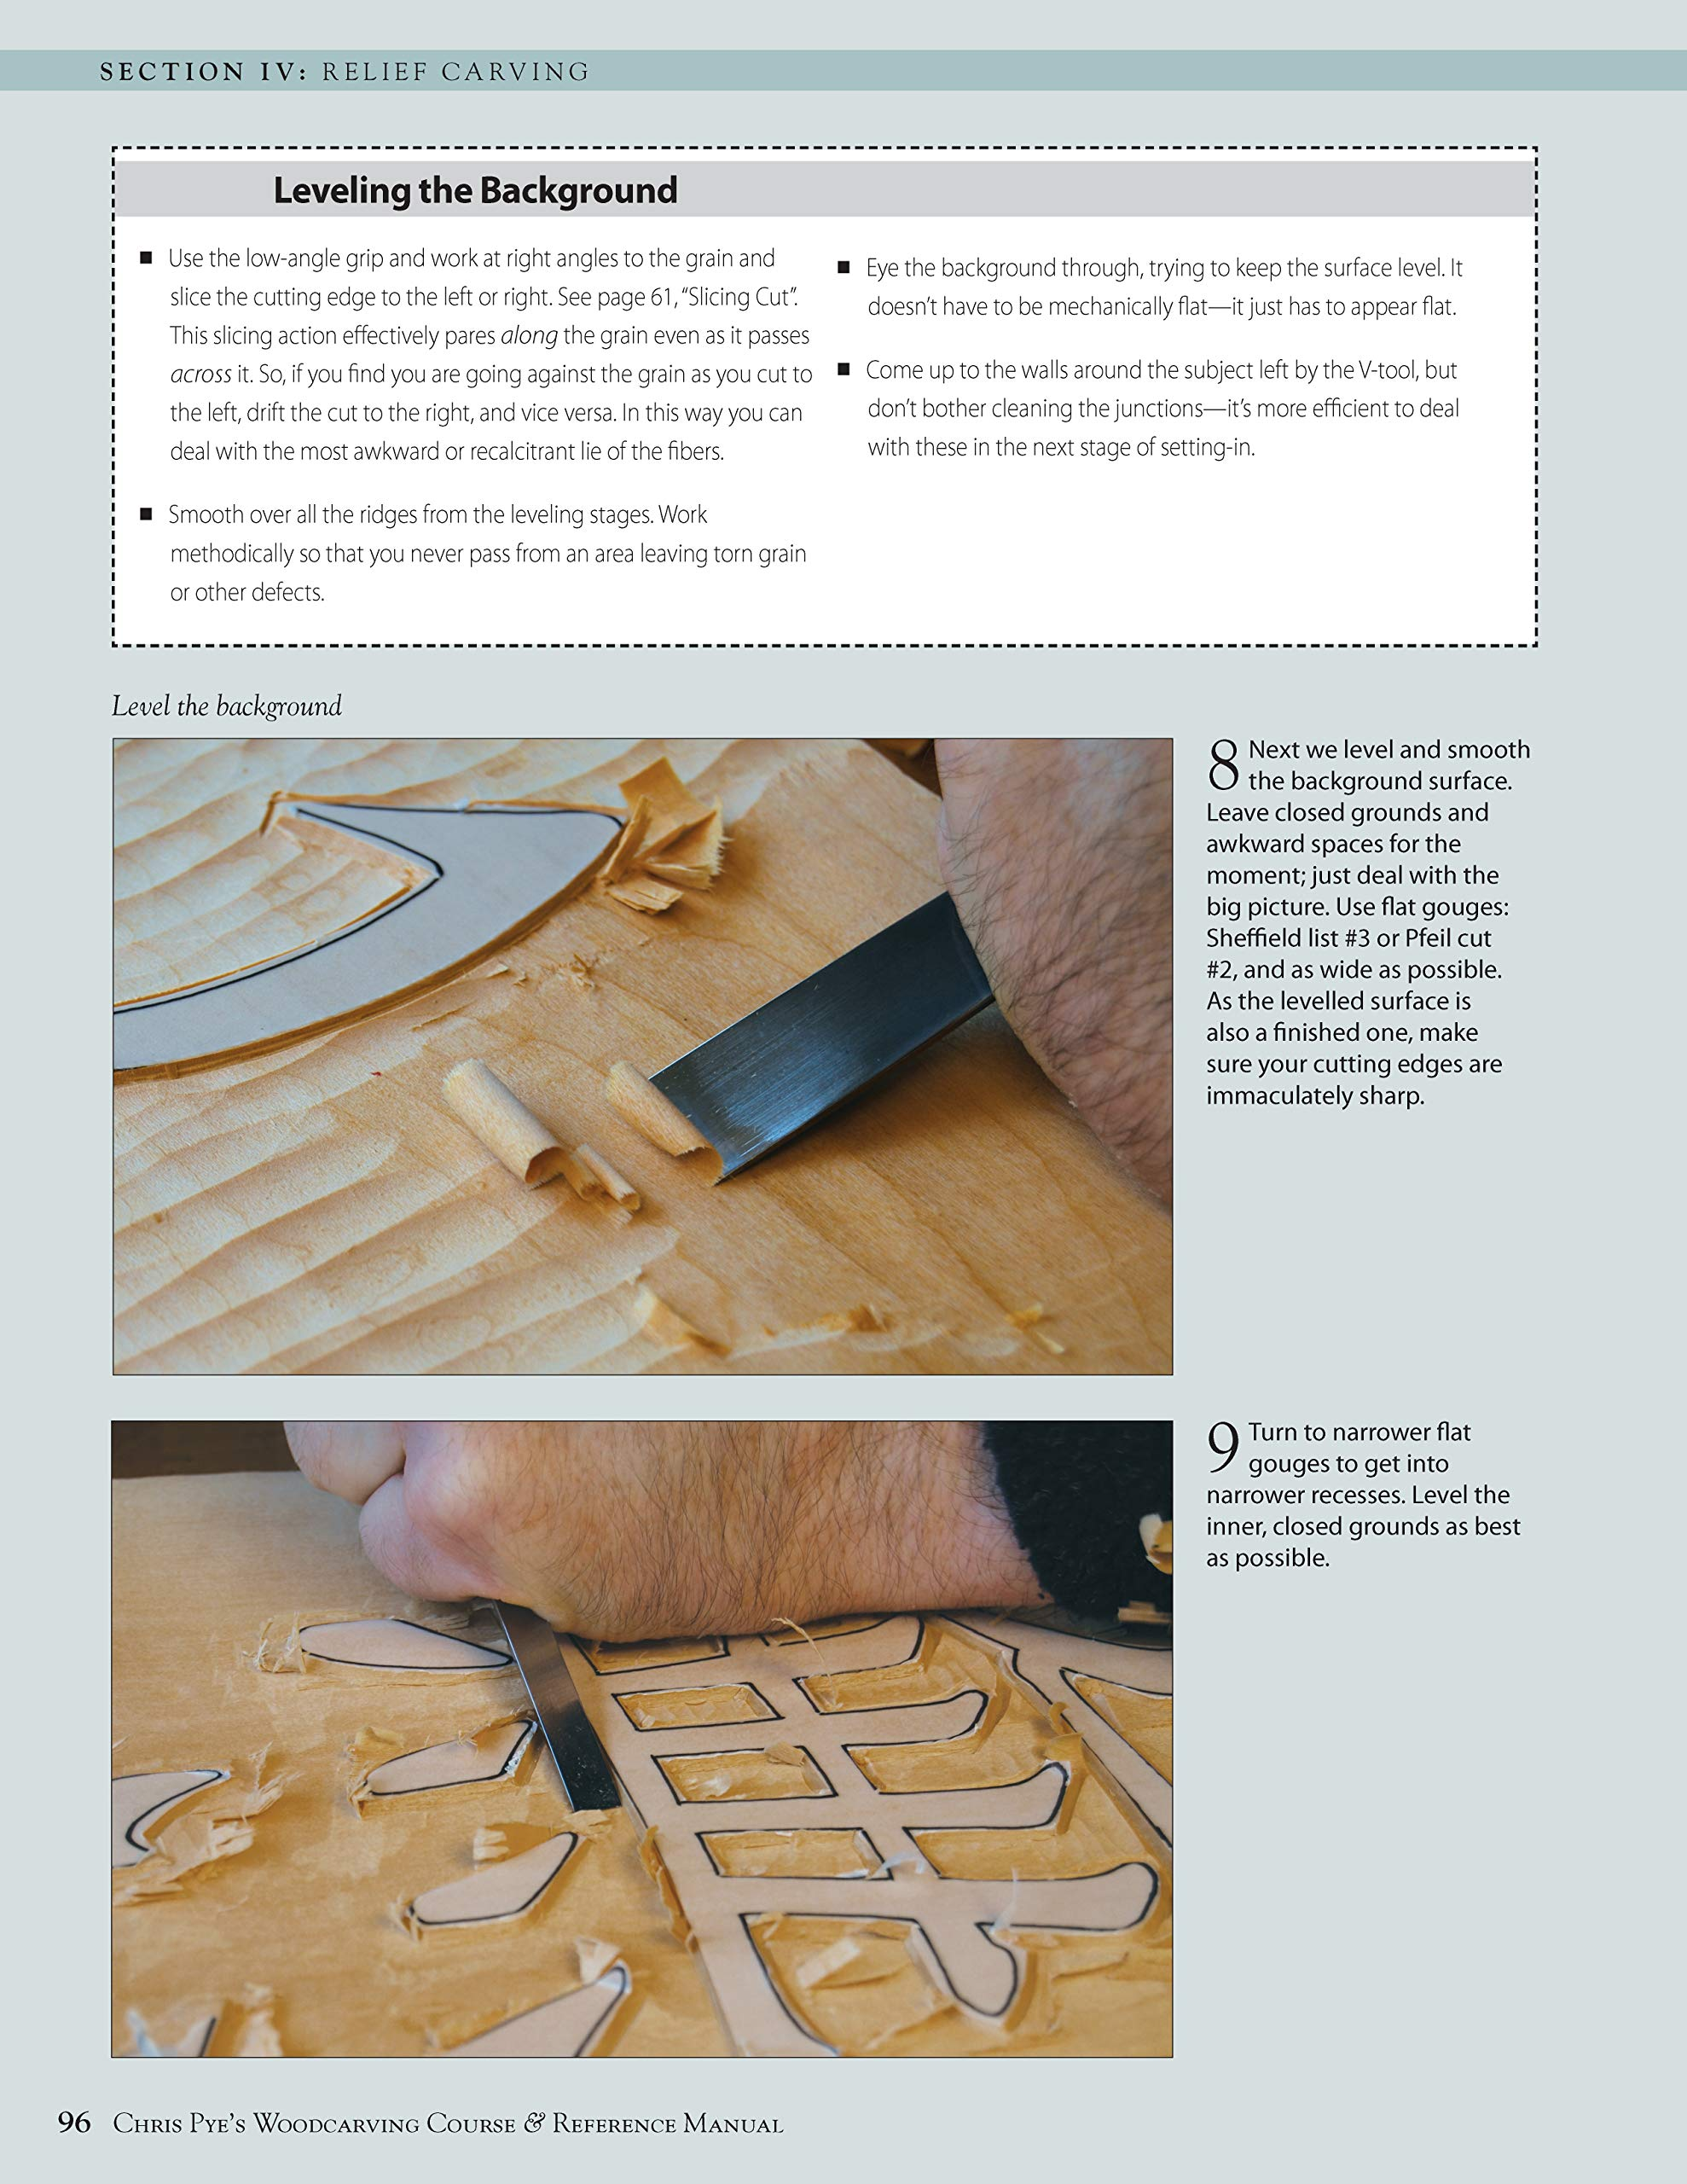 Chris Pye's Woodcarving Course & Reference Manual: A